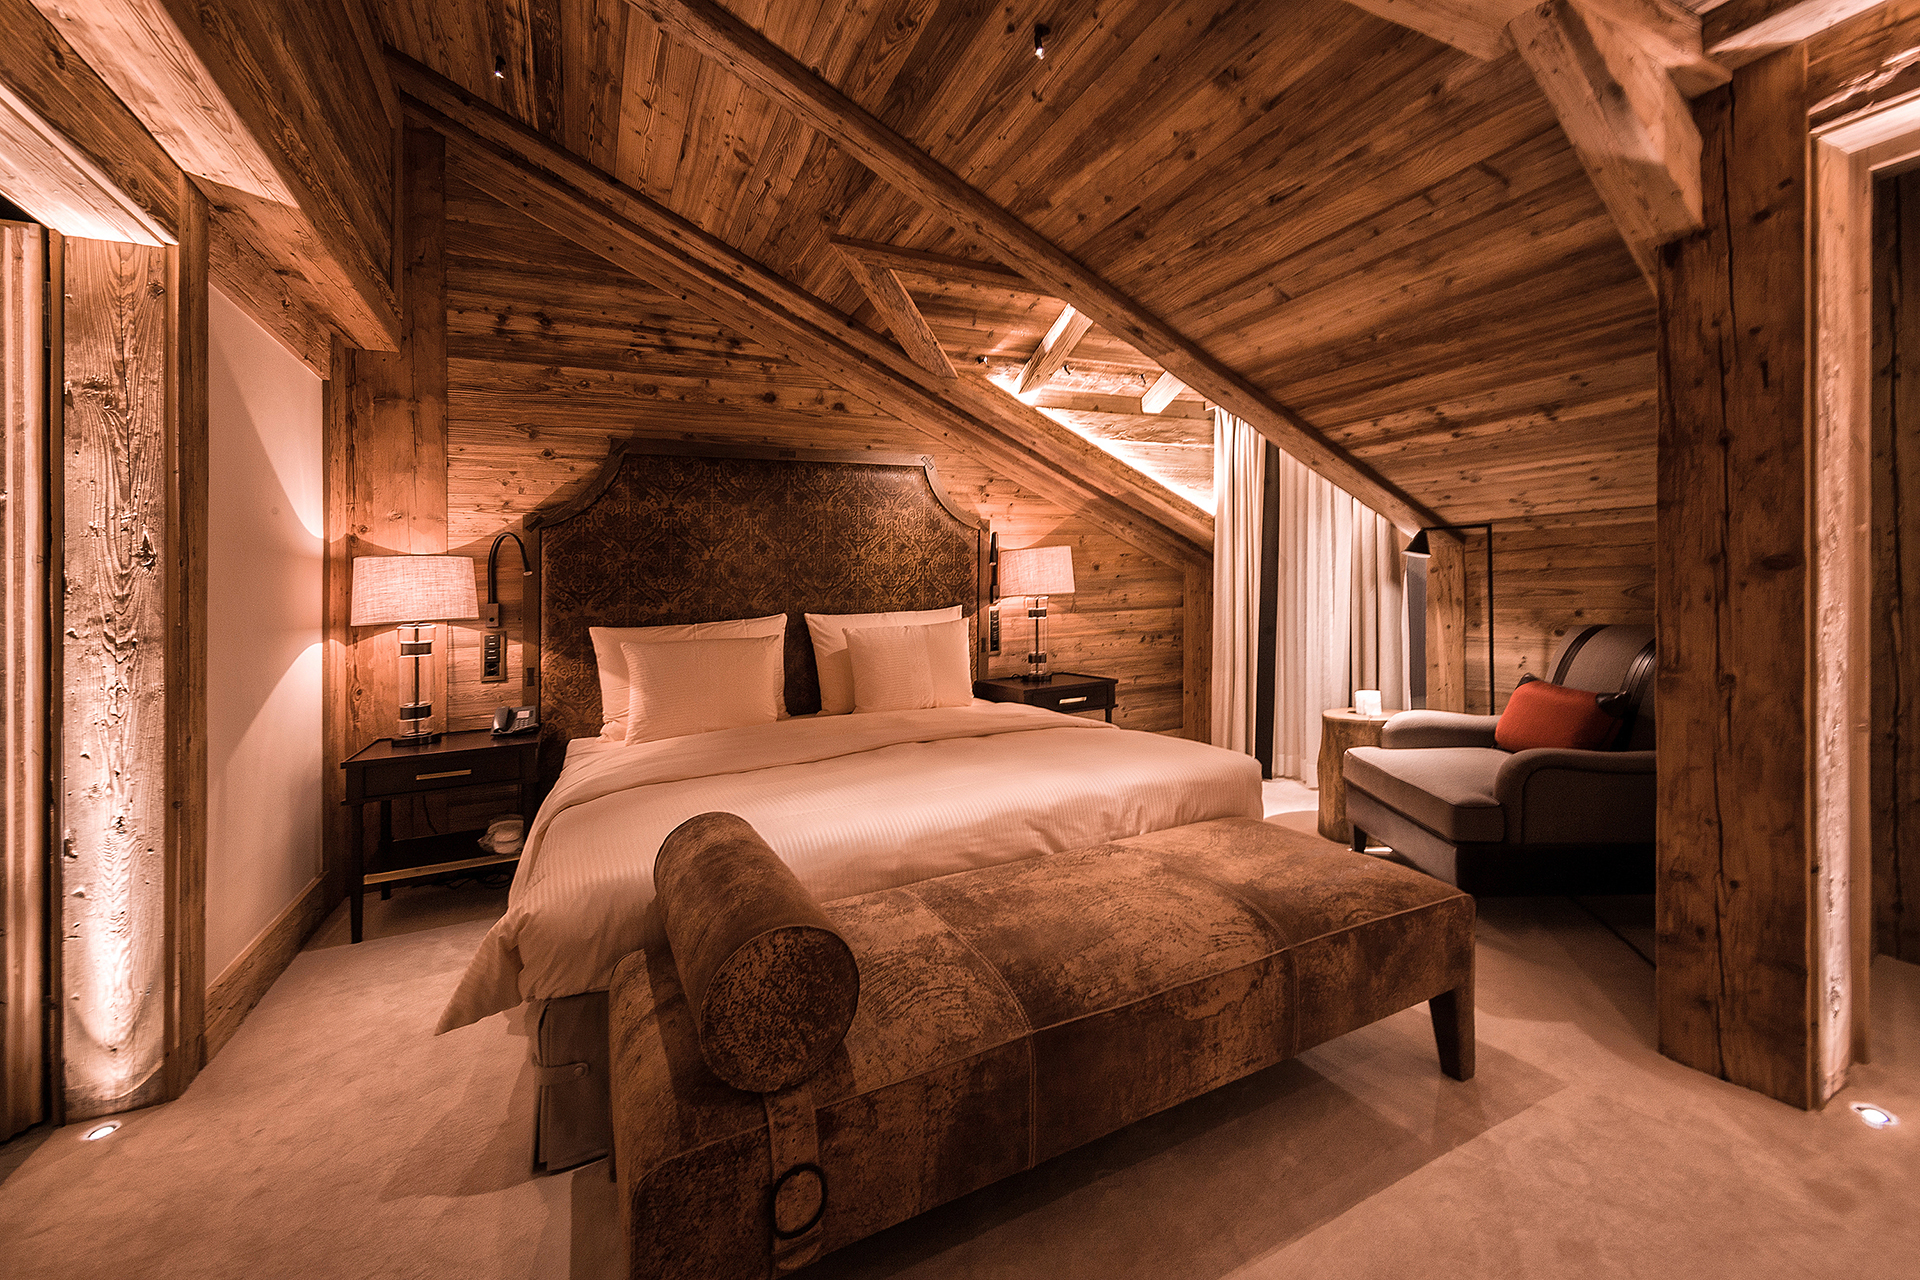 TheAlpinaGstaad_Rooms&Suites_0294_1920.jpg